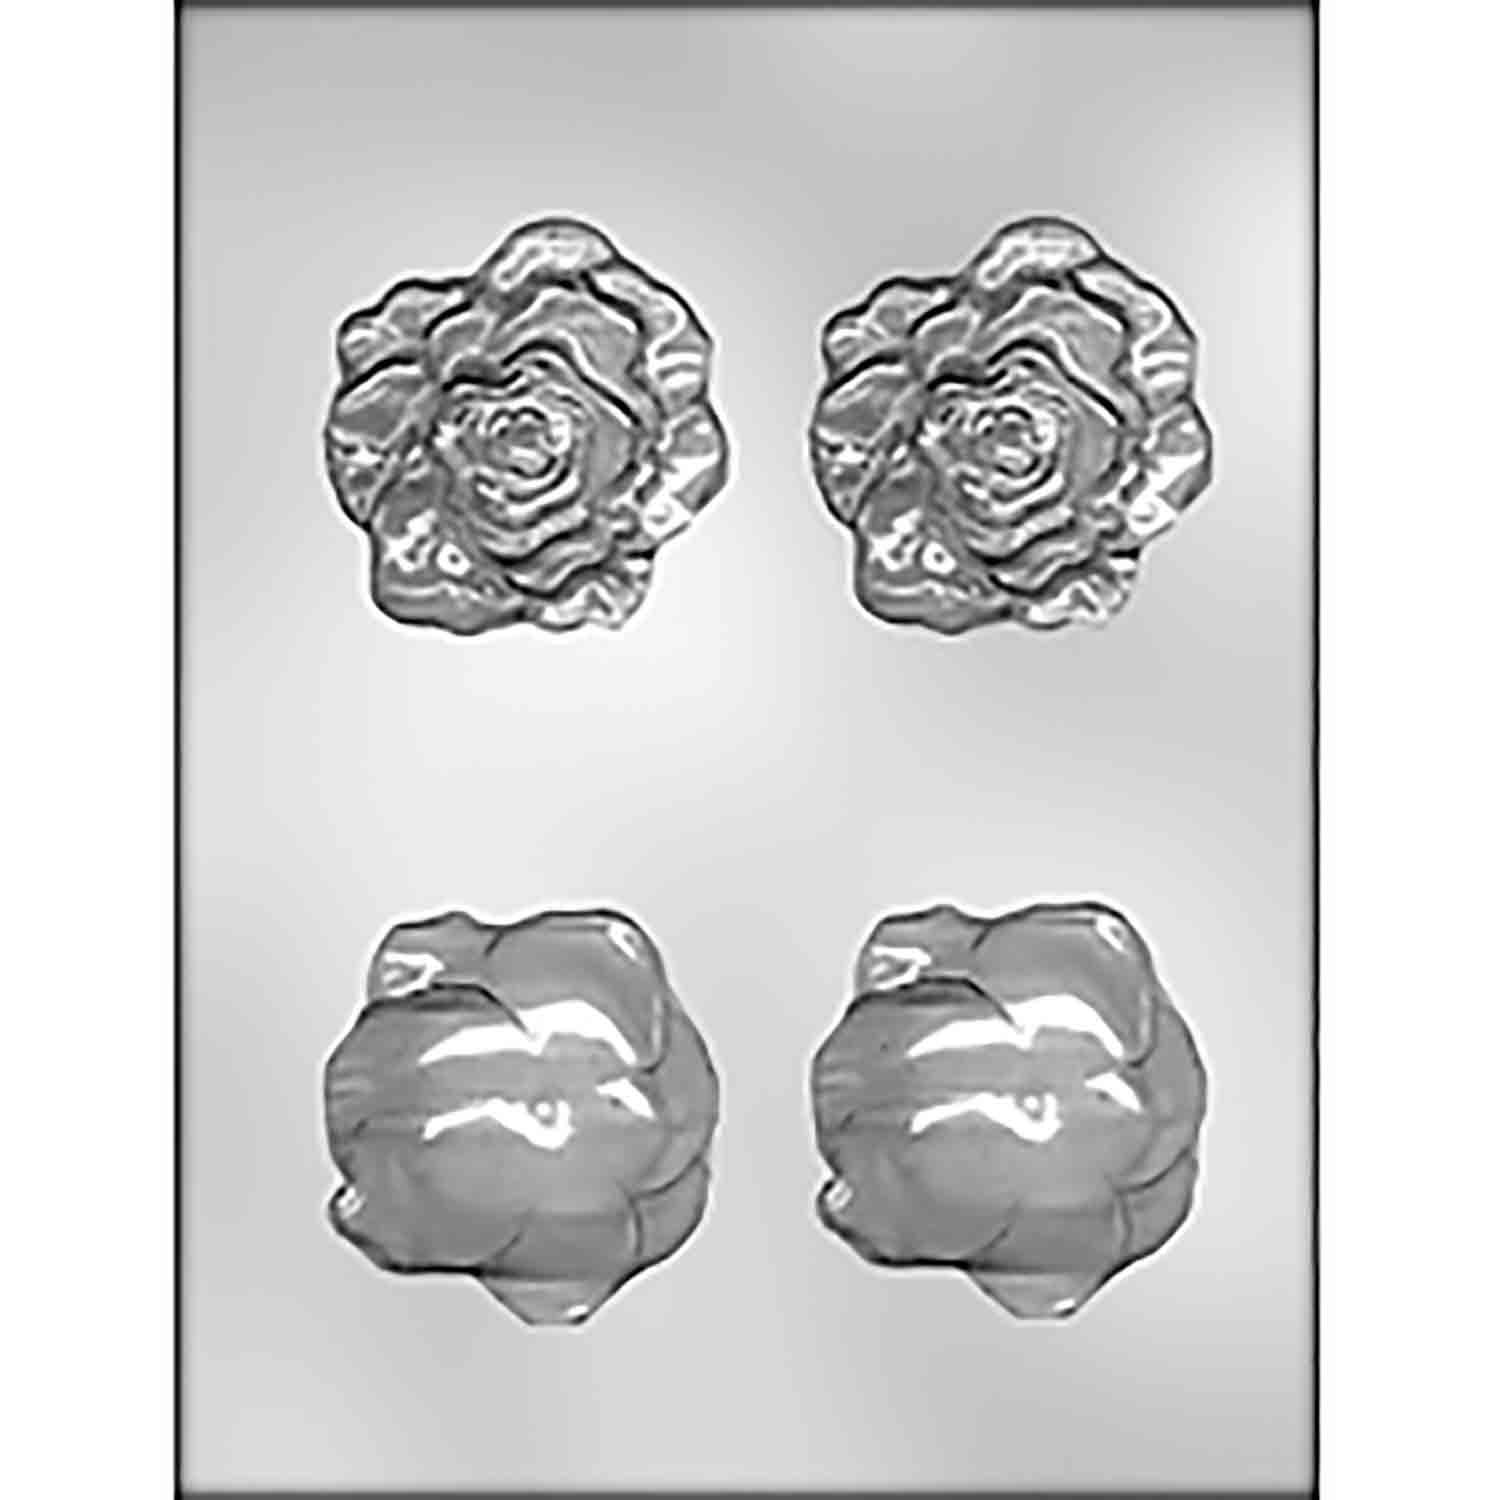 3D Full Bloom Rose Chocolate Candy Mold